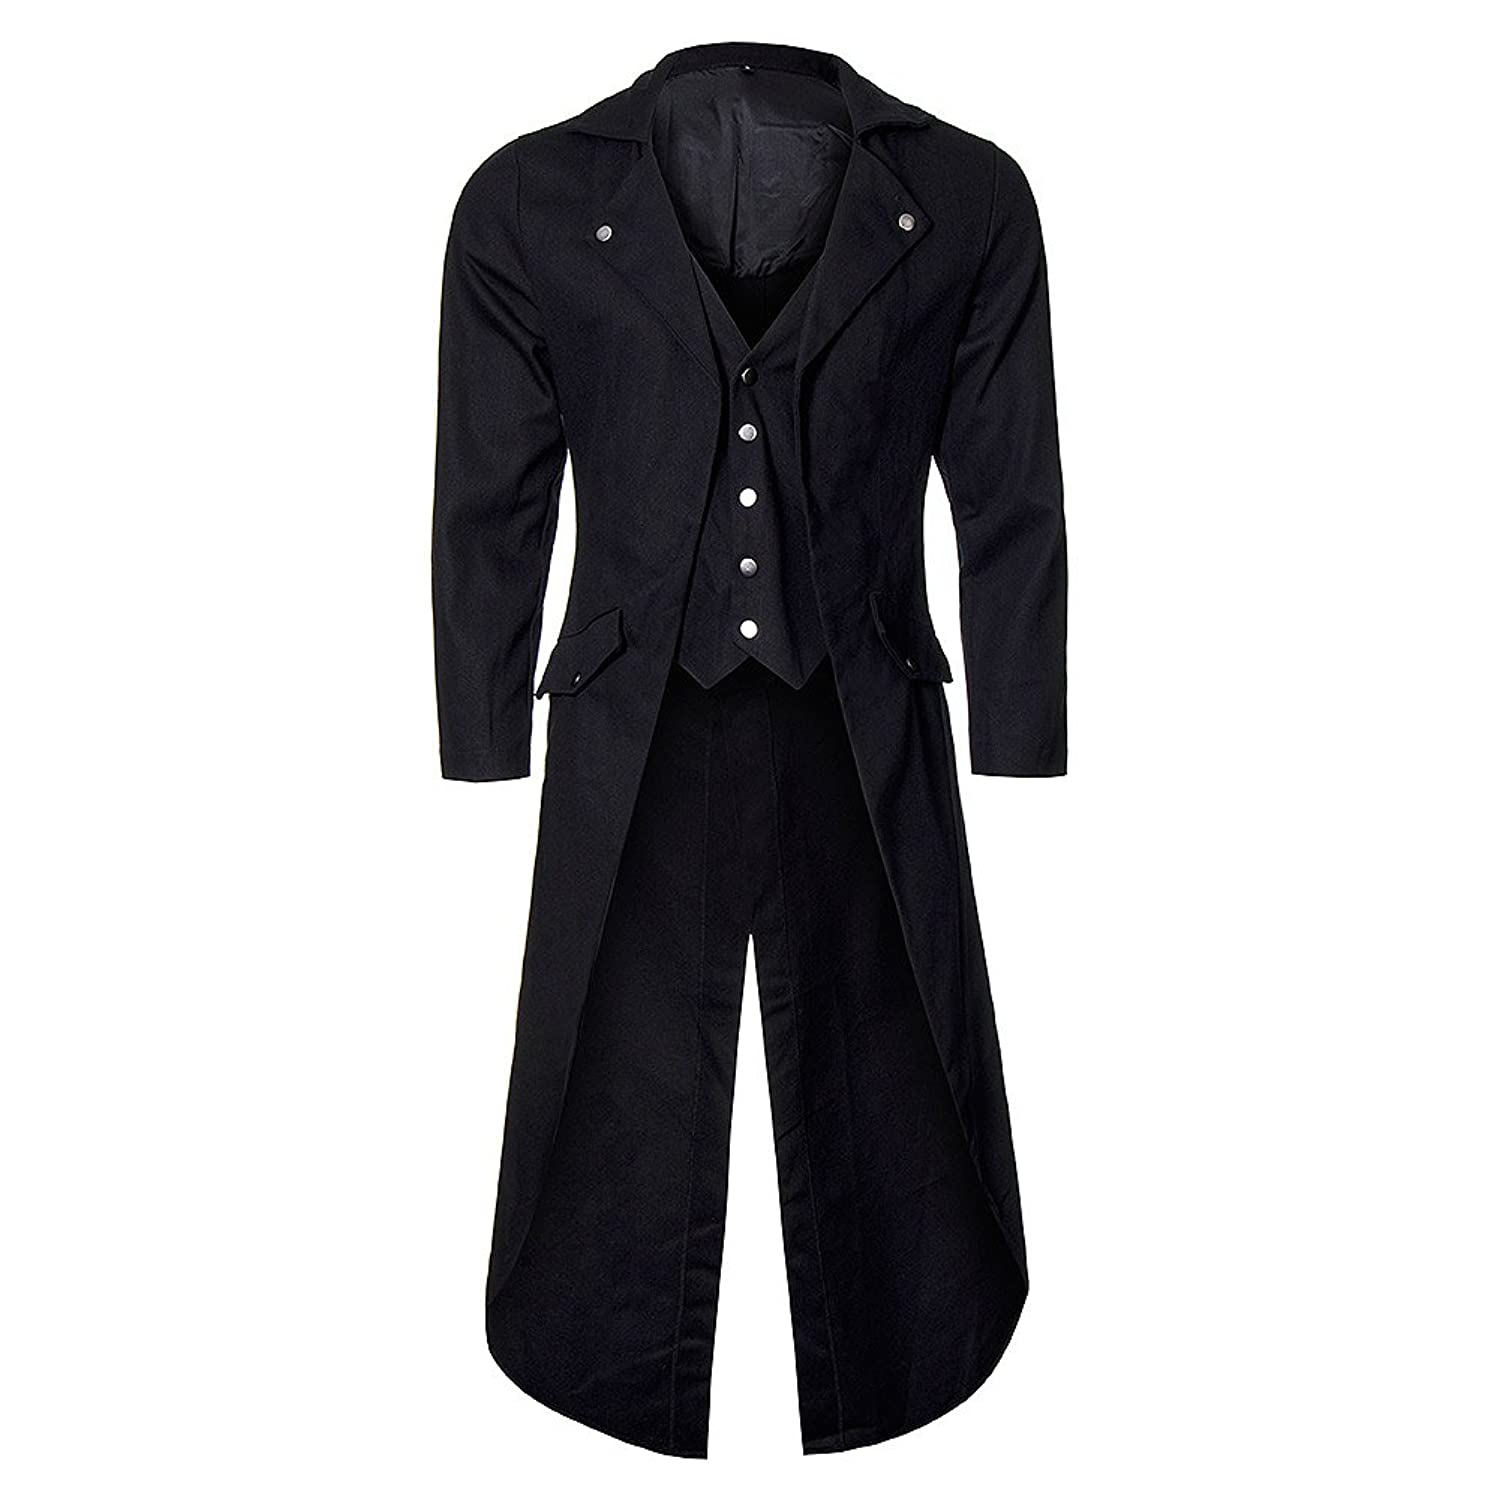 Men's Victorian Costume and Clothing Guide Banned Unisex-adults Frock Tail Coat $99.16 AT vintagedancer.com